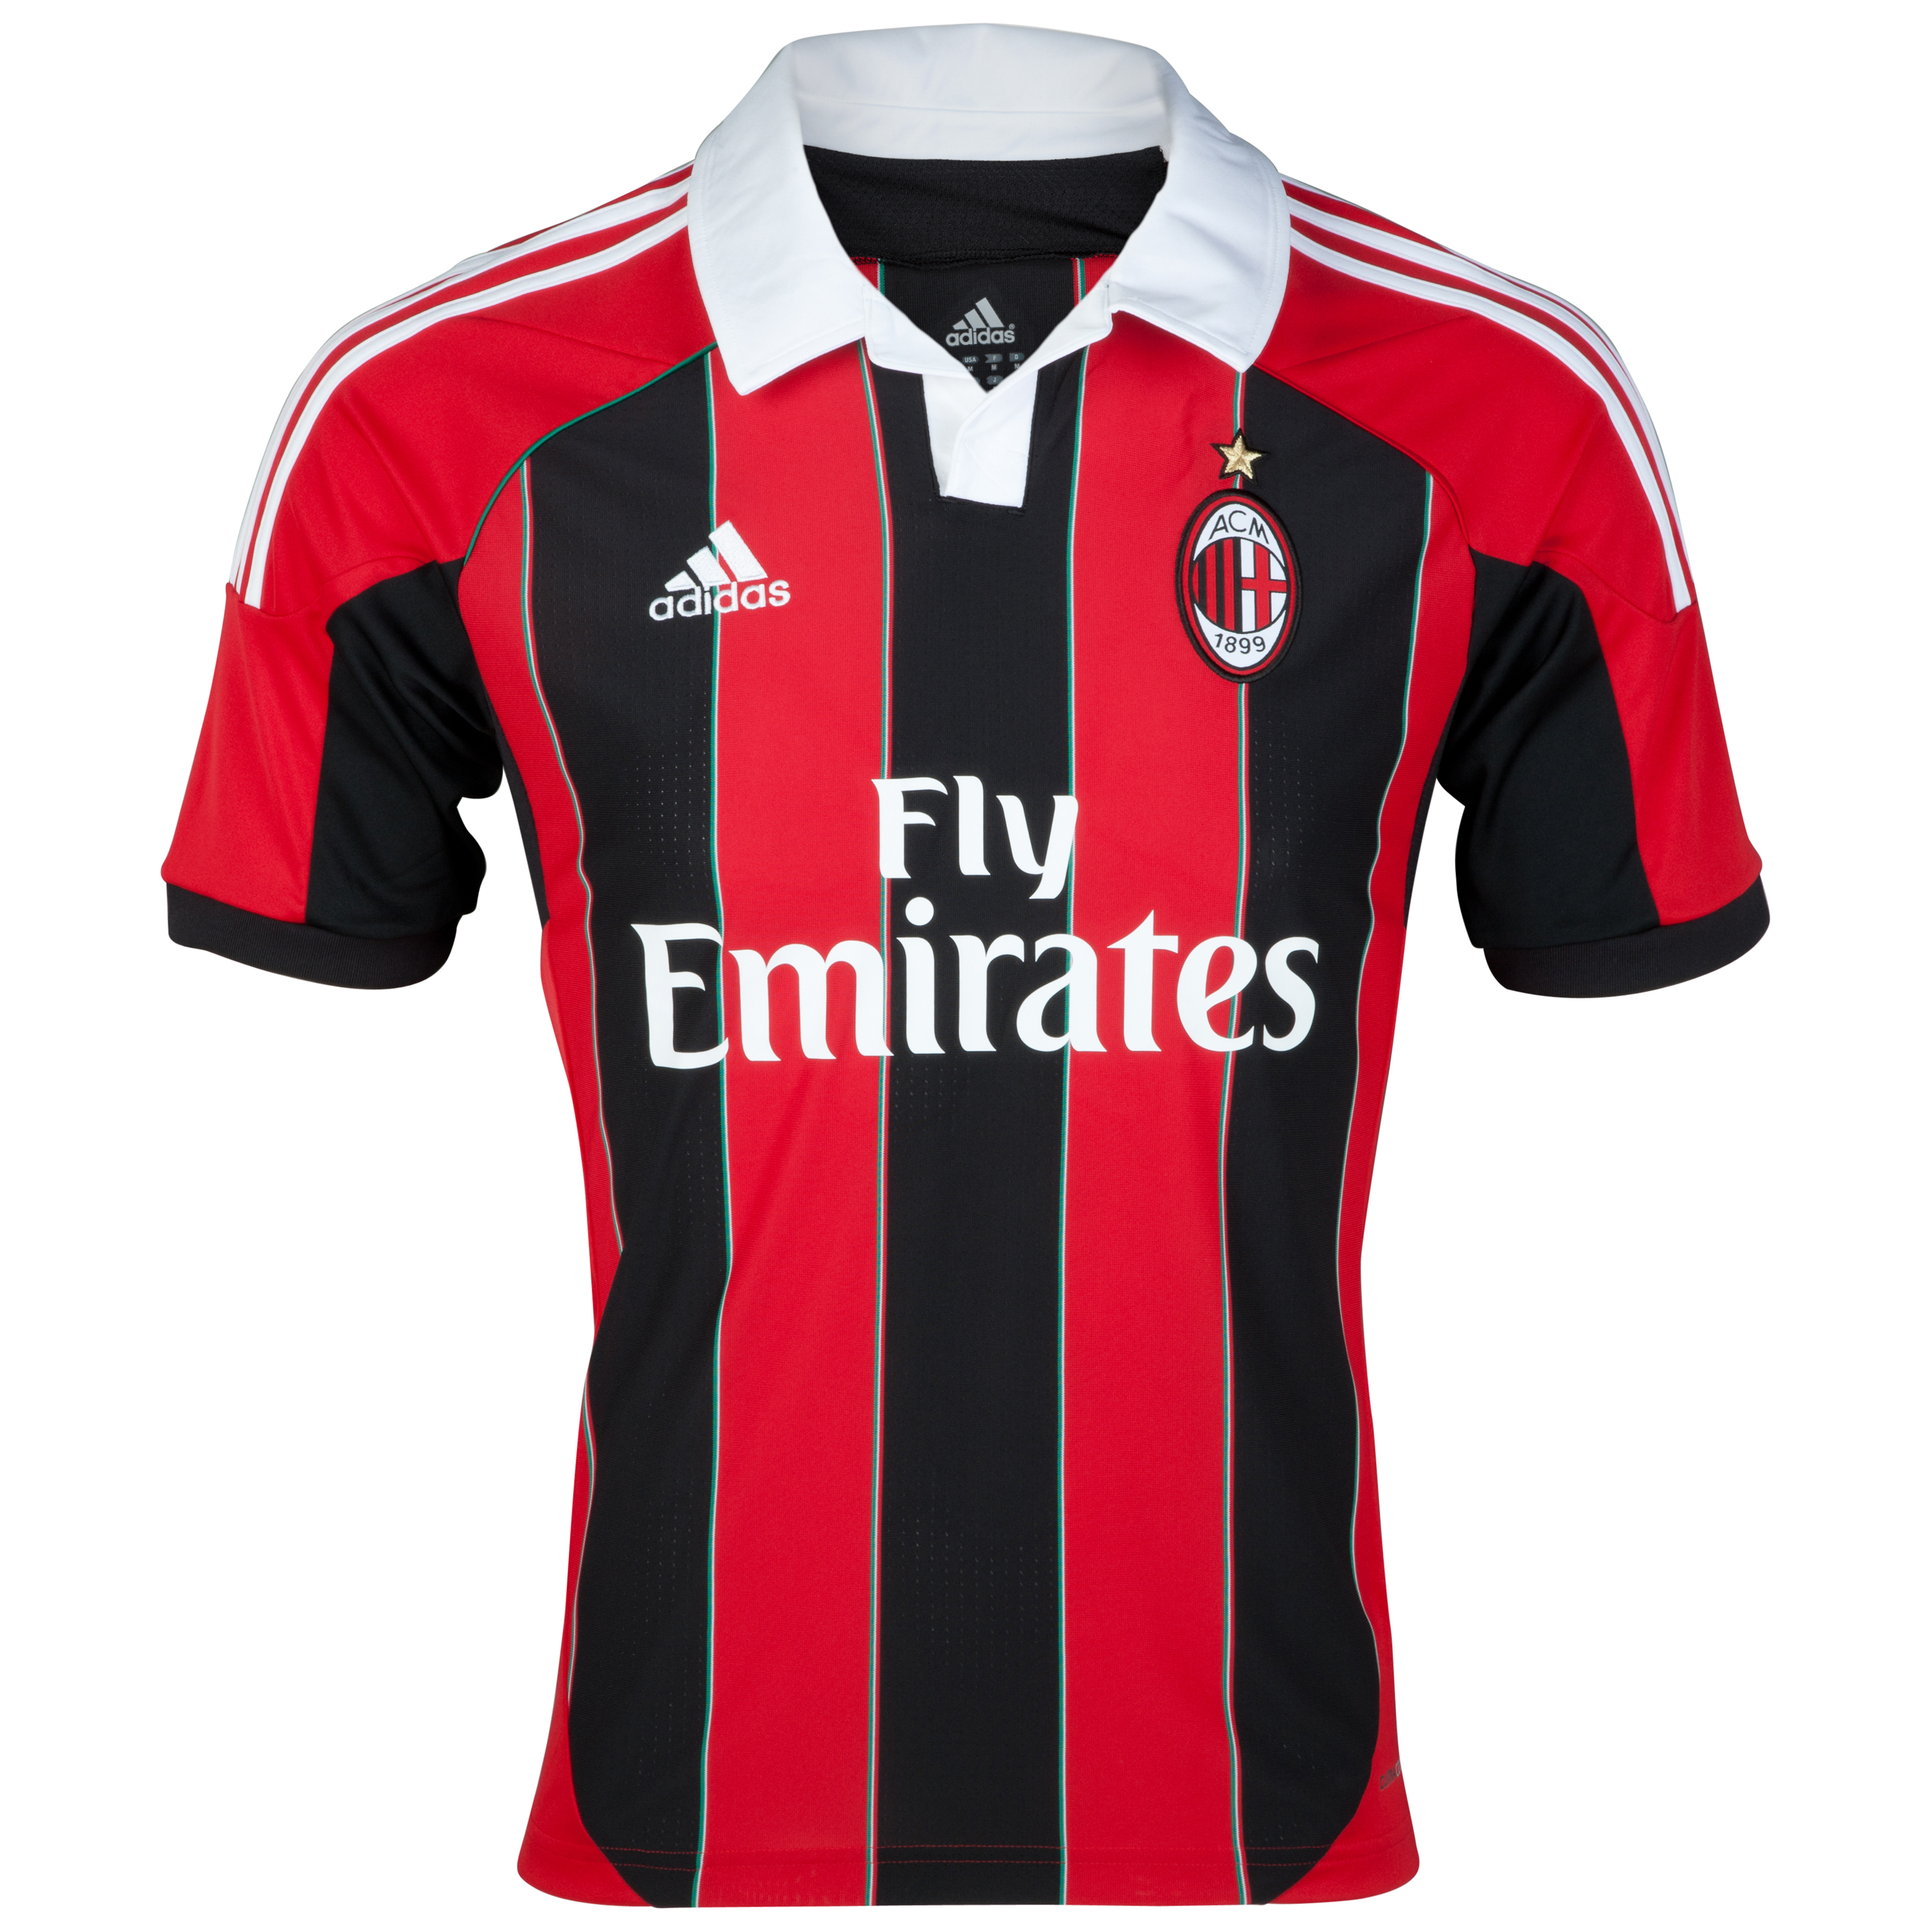 AC Milan Home Shirt 2012/13 - Youths